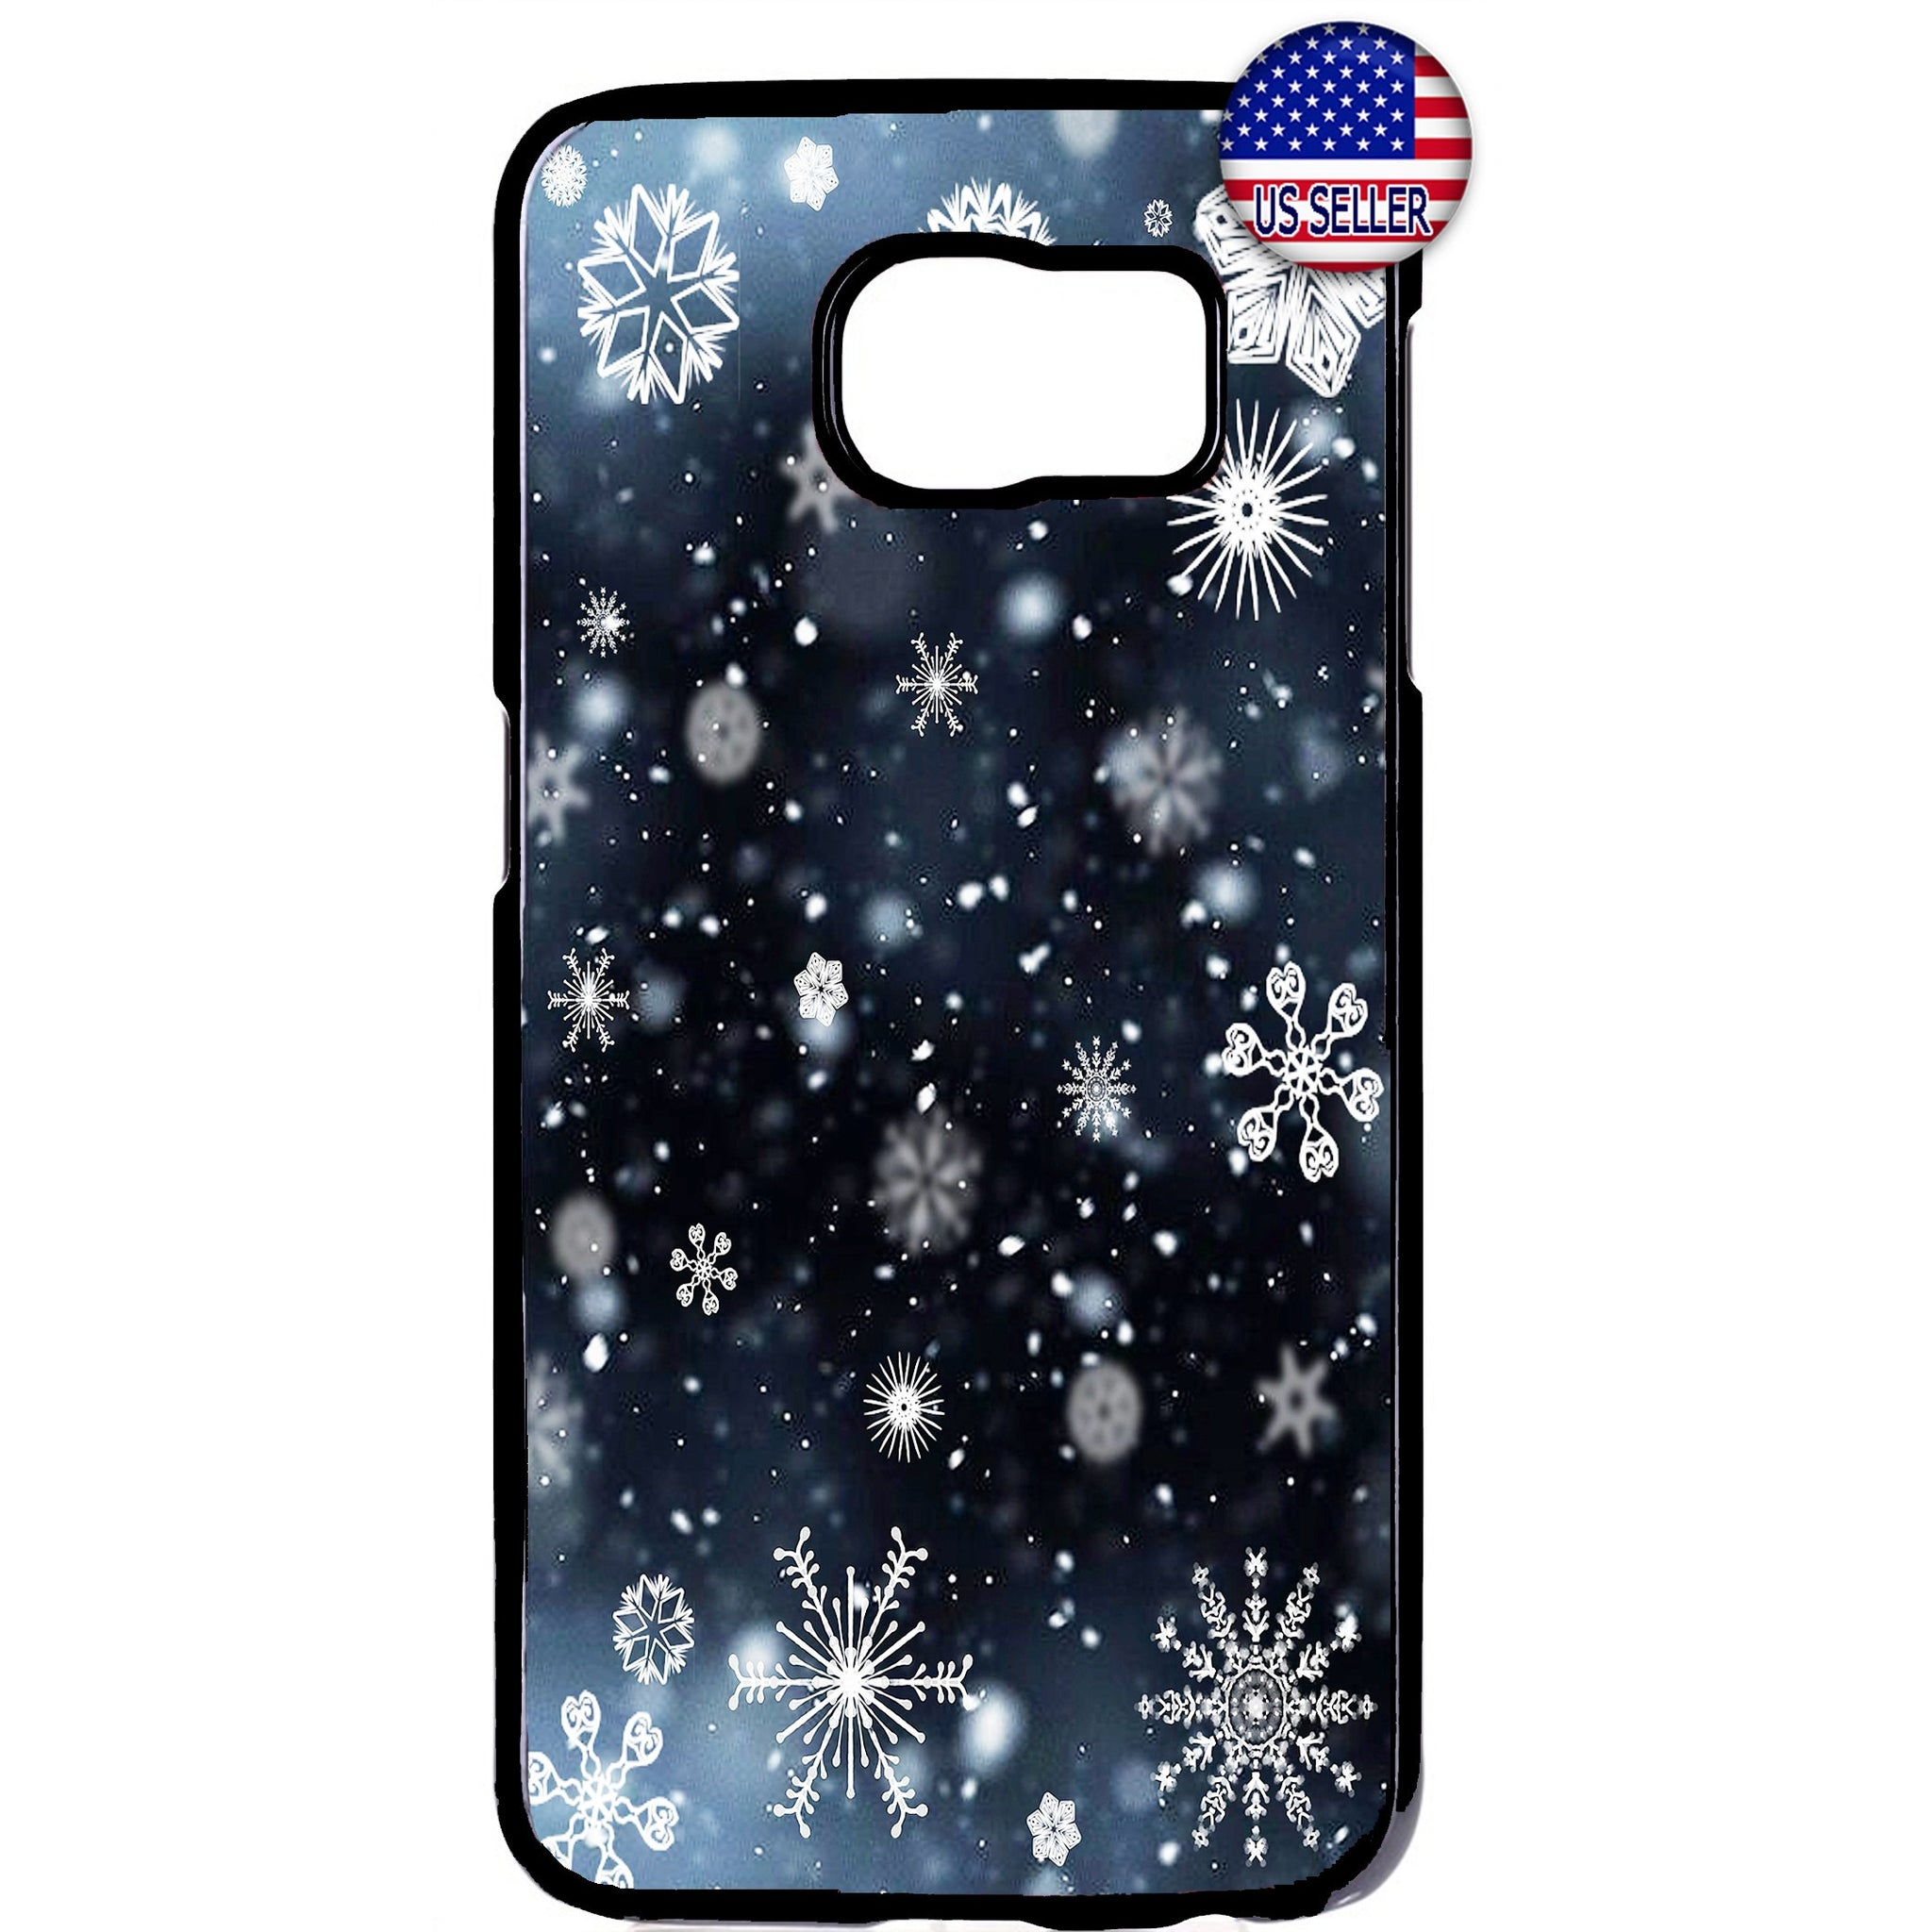 Merry Christmas Snow Flakes Rubber Case Cover For Samsung Galaxy